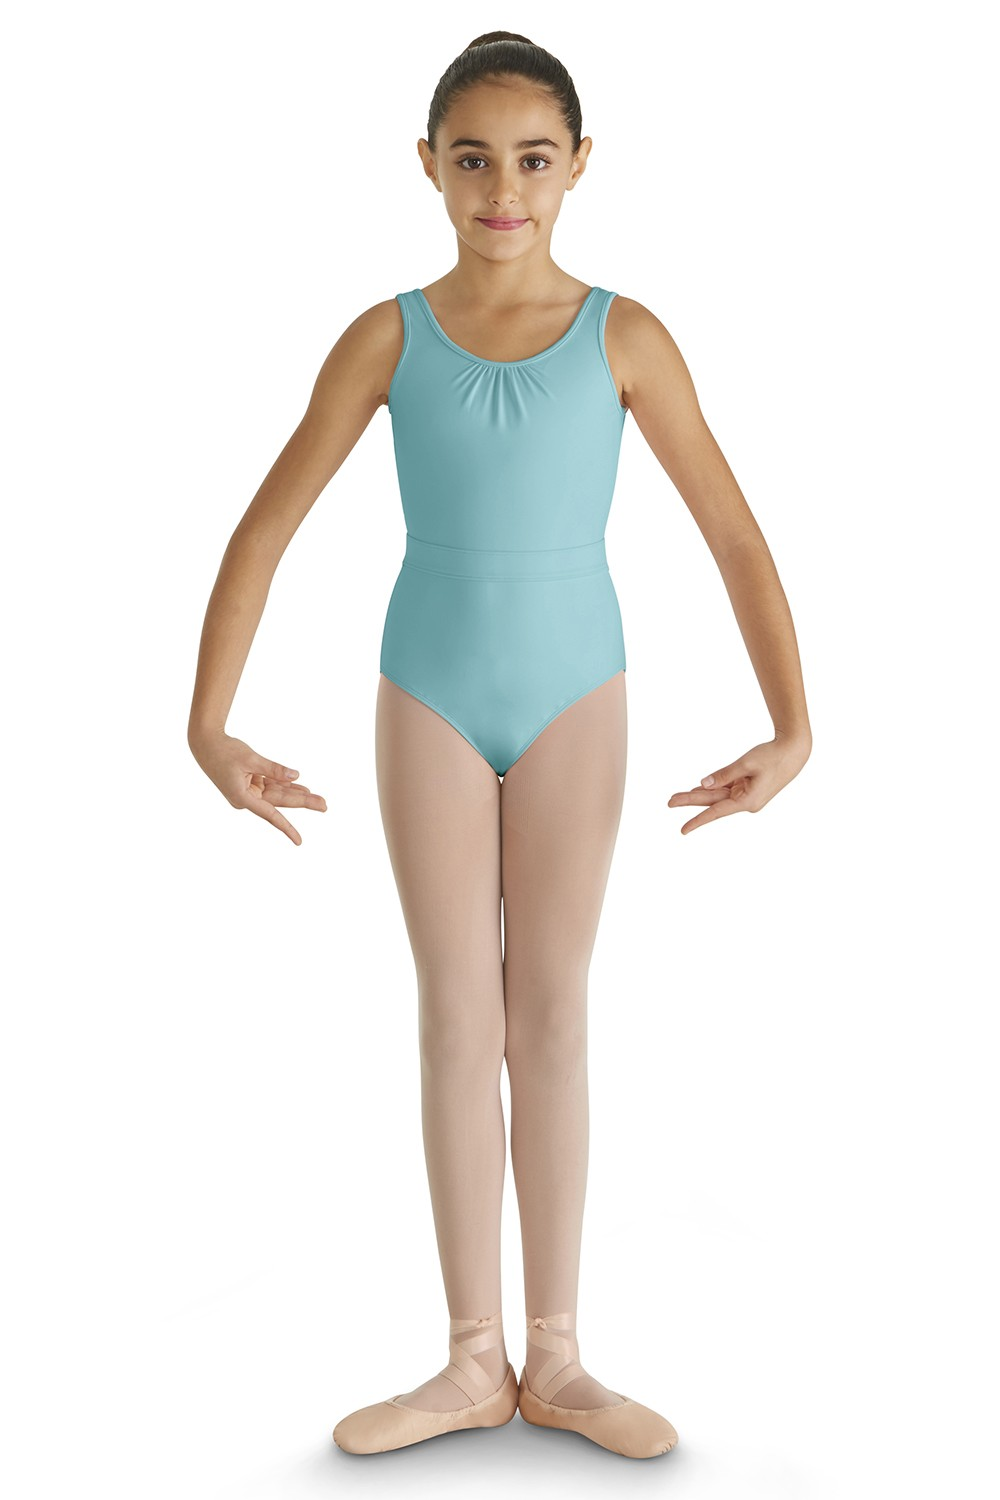 Belluna Children's Dance Leotards